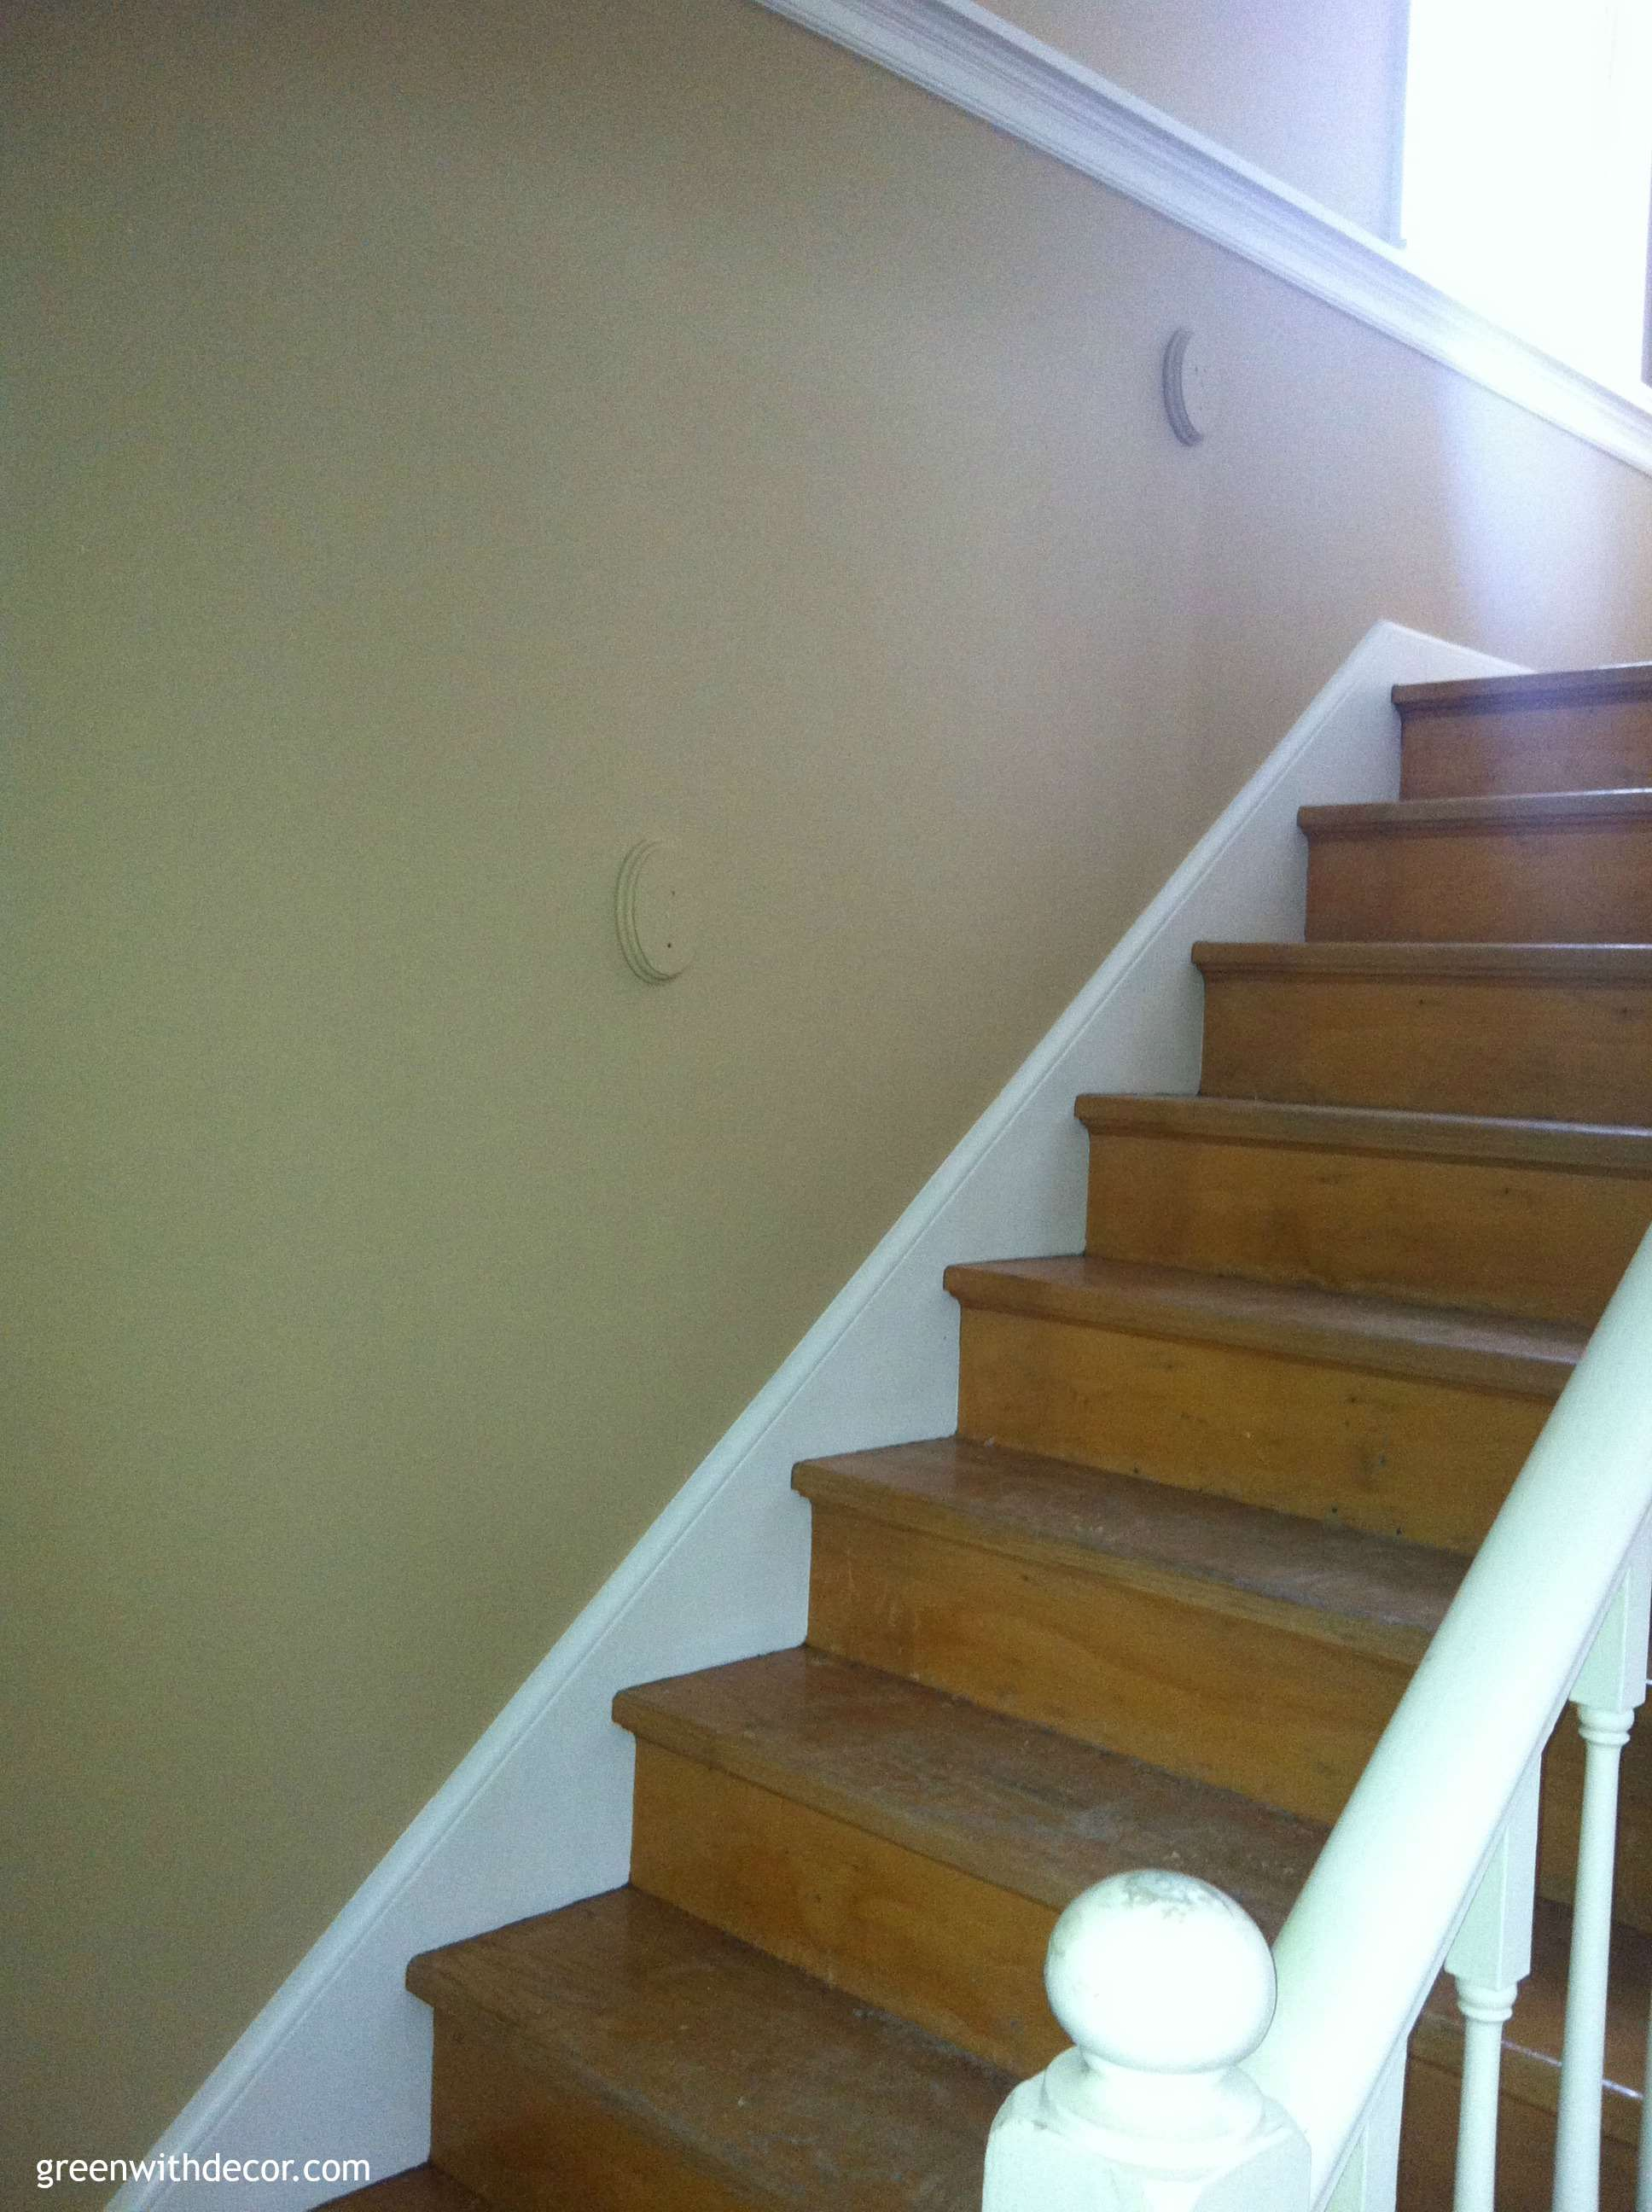 Green With Decor – Sherwin Williams Camelback paint wooden stairs